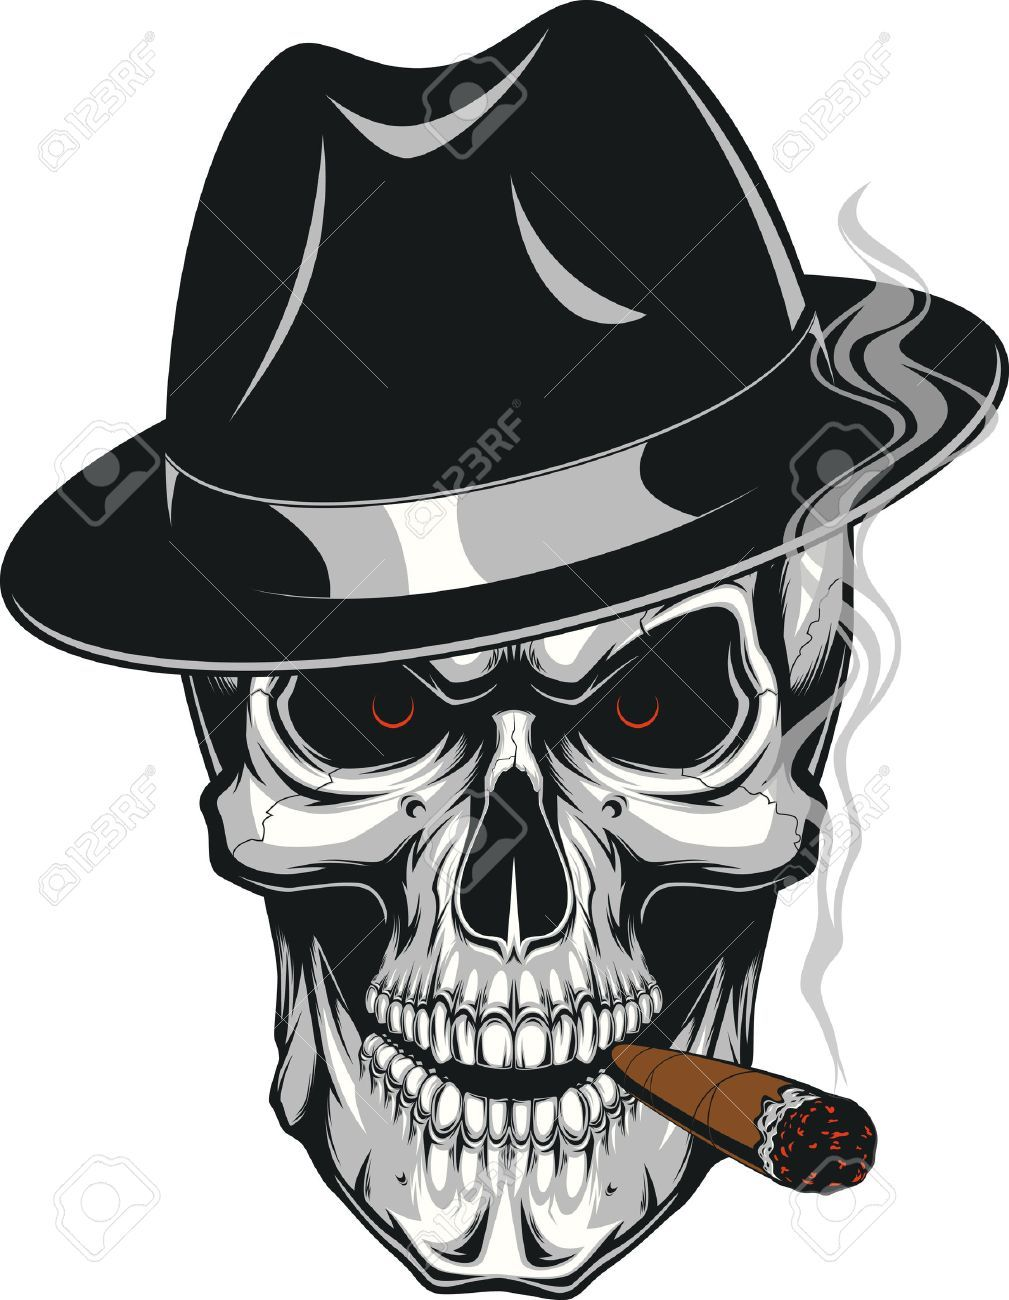 6bf35067a84e7 Vector - Vector illustration of an evil human skull in hat smoking a cigar  on a white background